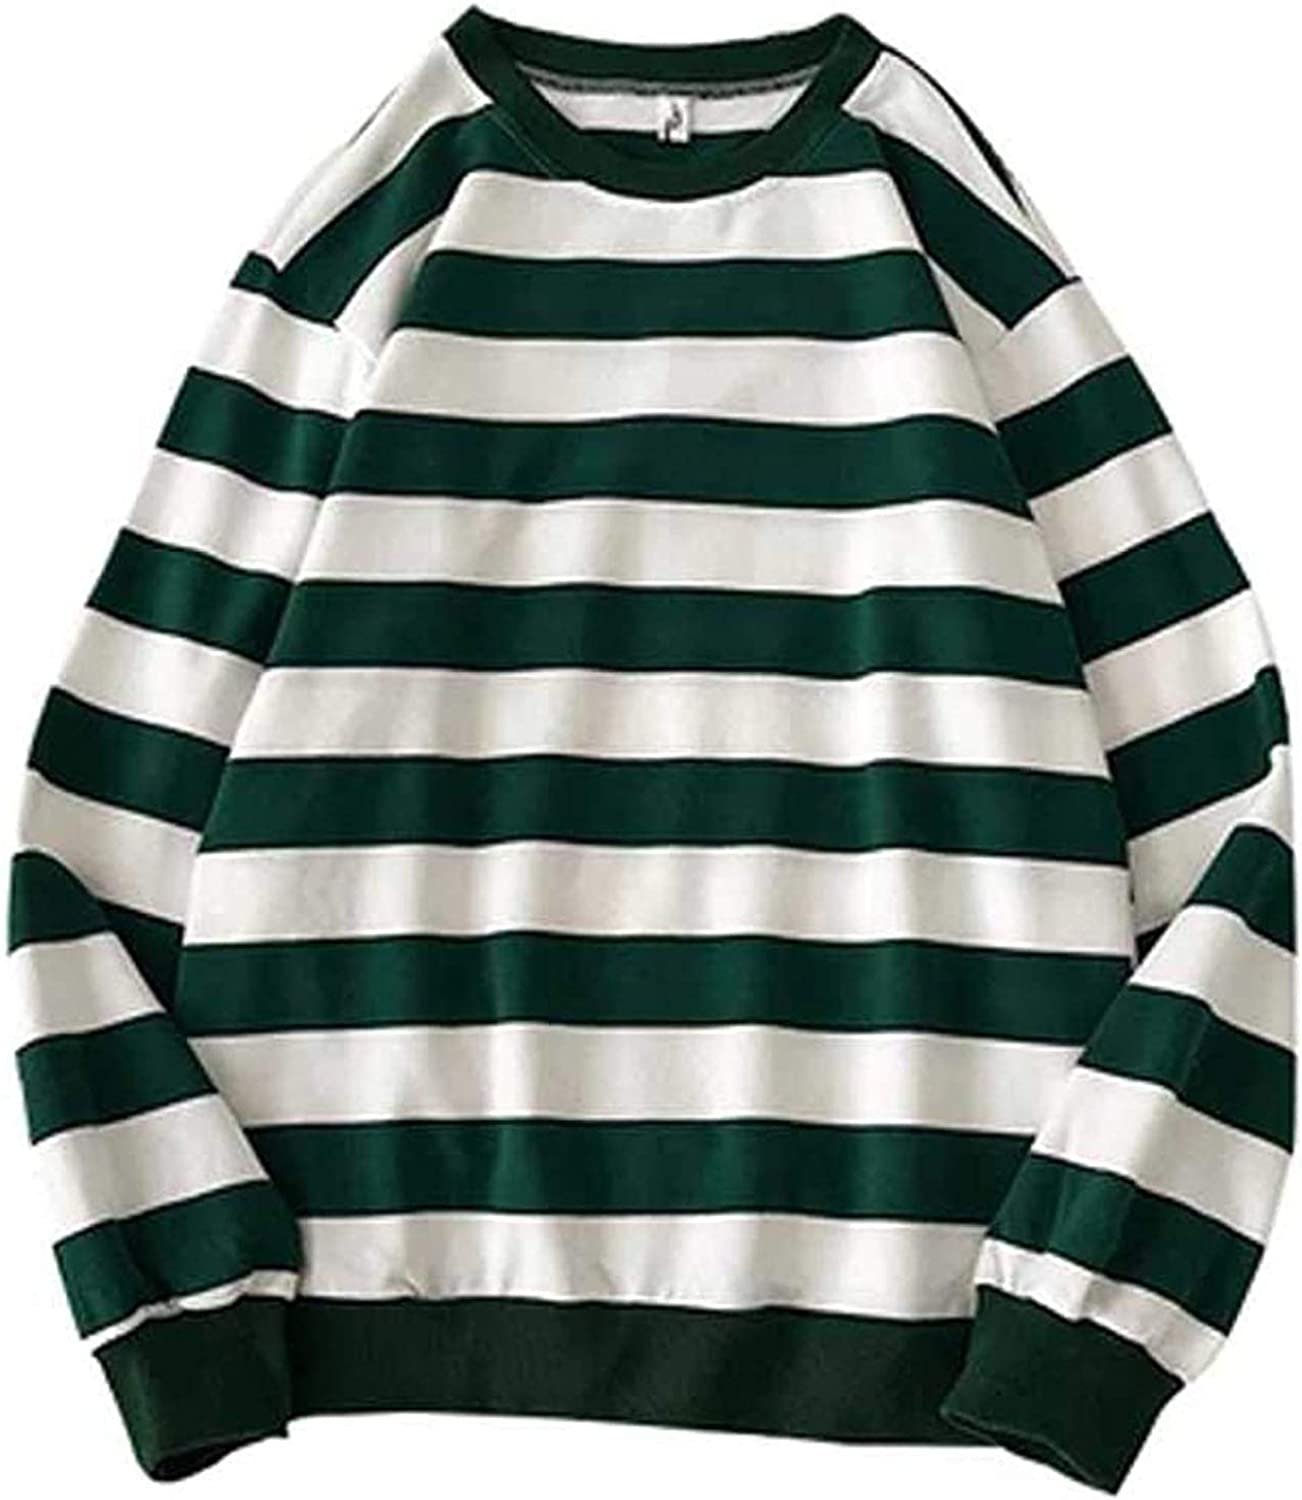 Mens Striped Color Block Sweatshirt Casual Round Neck Long Sleeve Pullover Fall Winter Soft Thermal Fit Jumper Tops